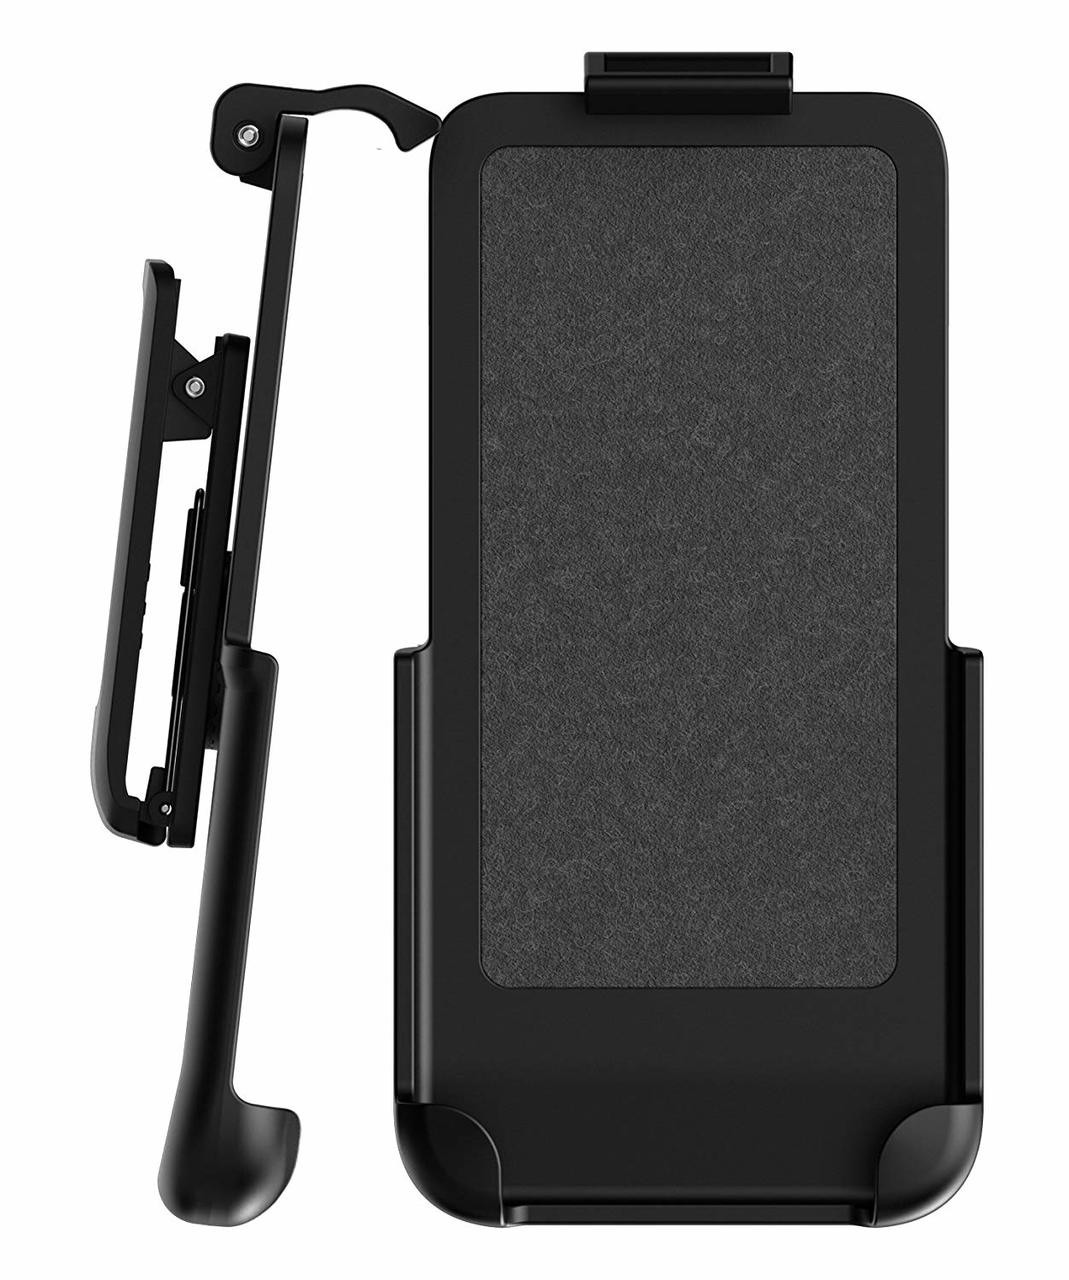 finest selection 24f26 7b1c5 Encased OtterBox Belt Clip Holster for OtterBox Defender Samsung Galaxy S9+  Plus (case not included)